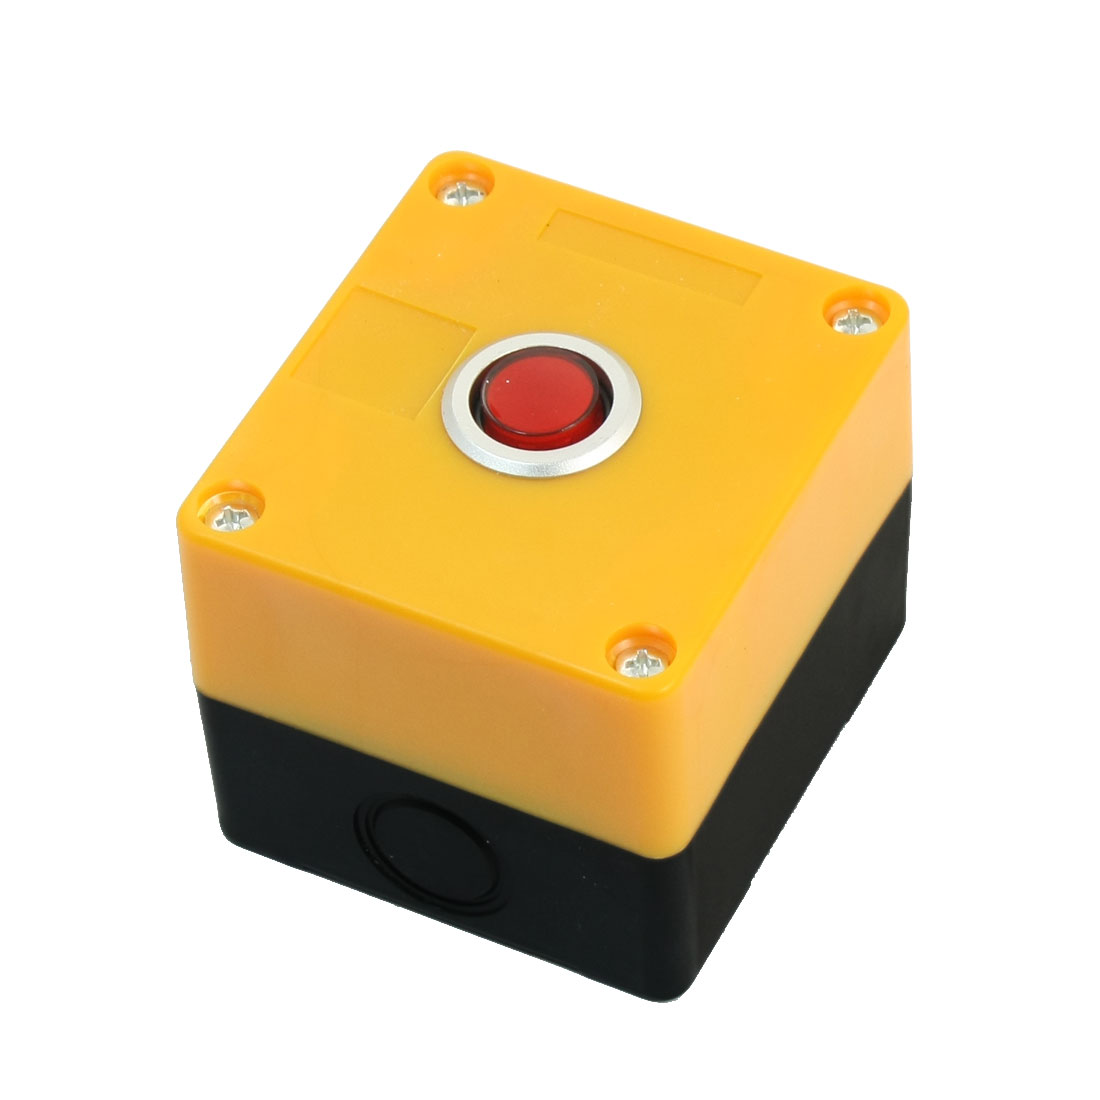 AC 220V 5A Red Pilot Lamp SPDT 1NO 1NC 5Pin Latching Round Button Pushbutton Station Switch Control Protector Box